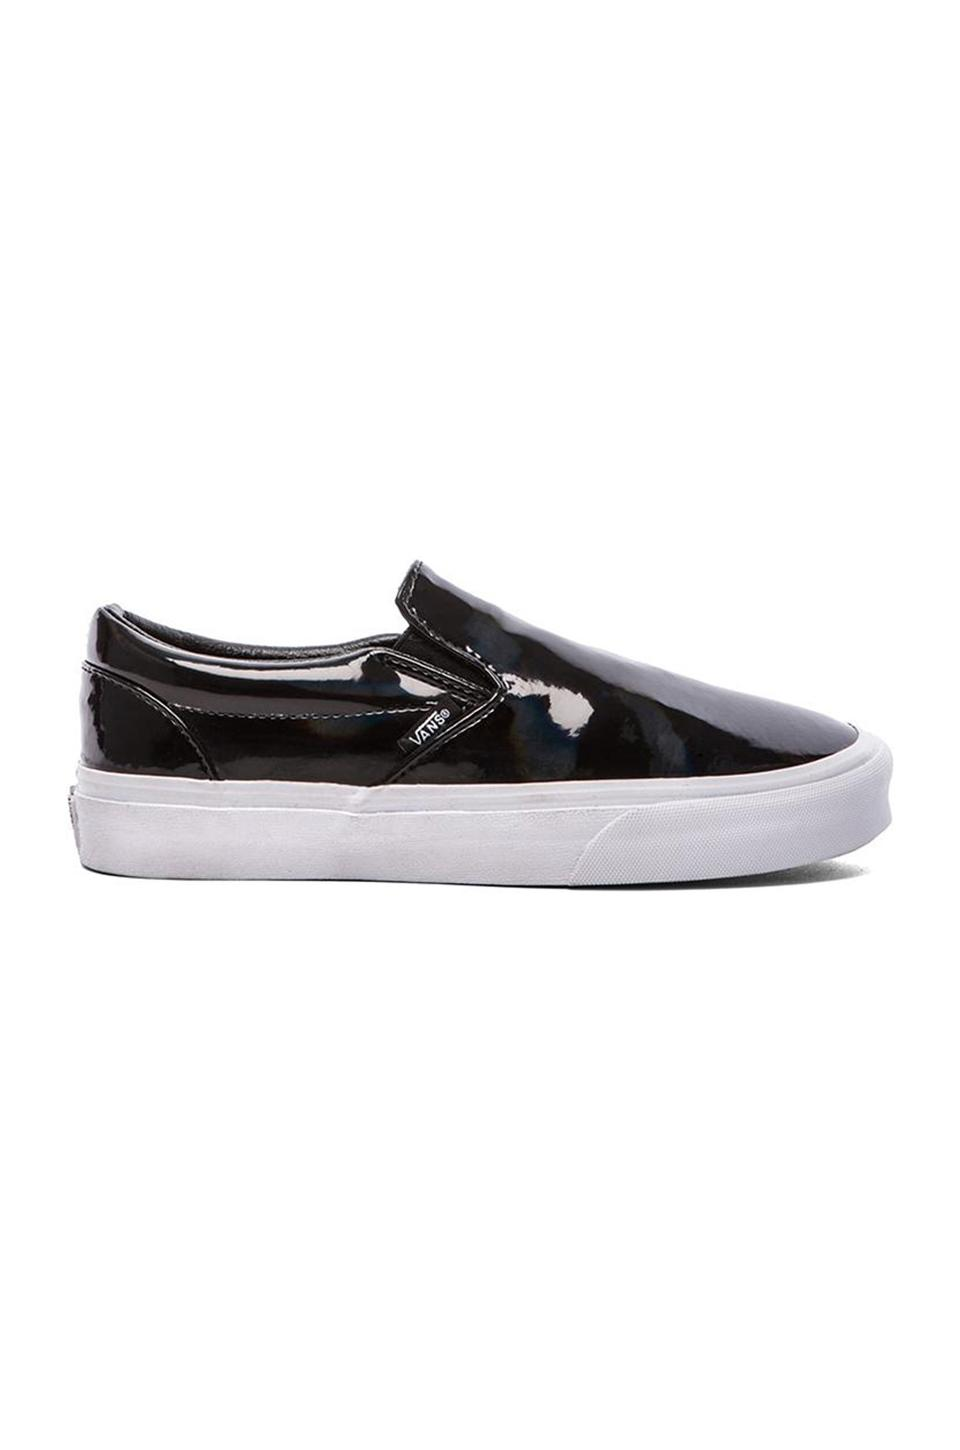 Vans Classic Slip-On in Black Patent